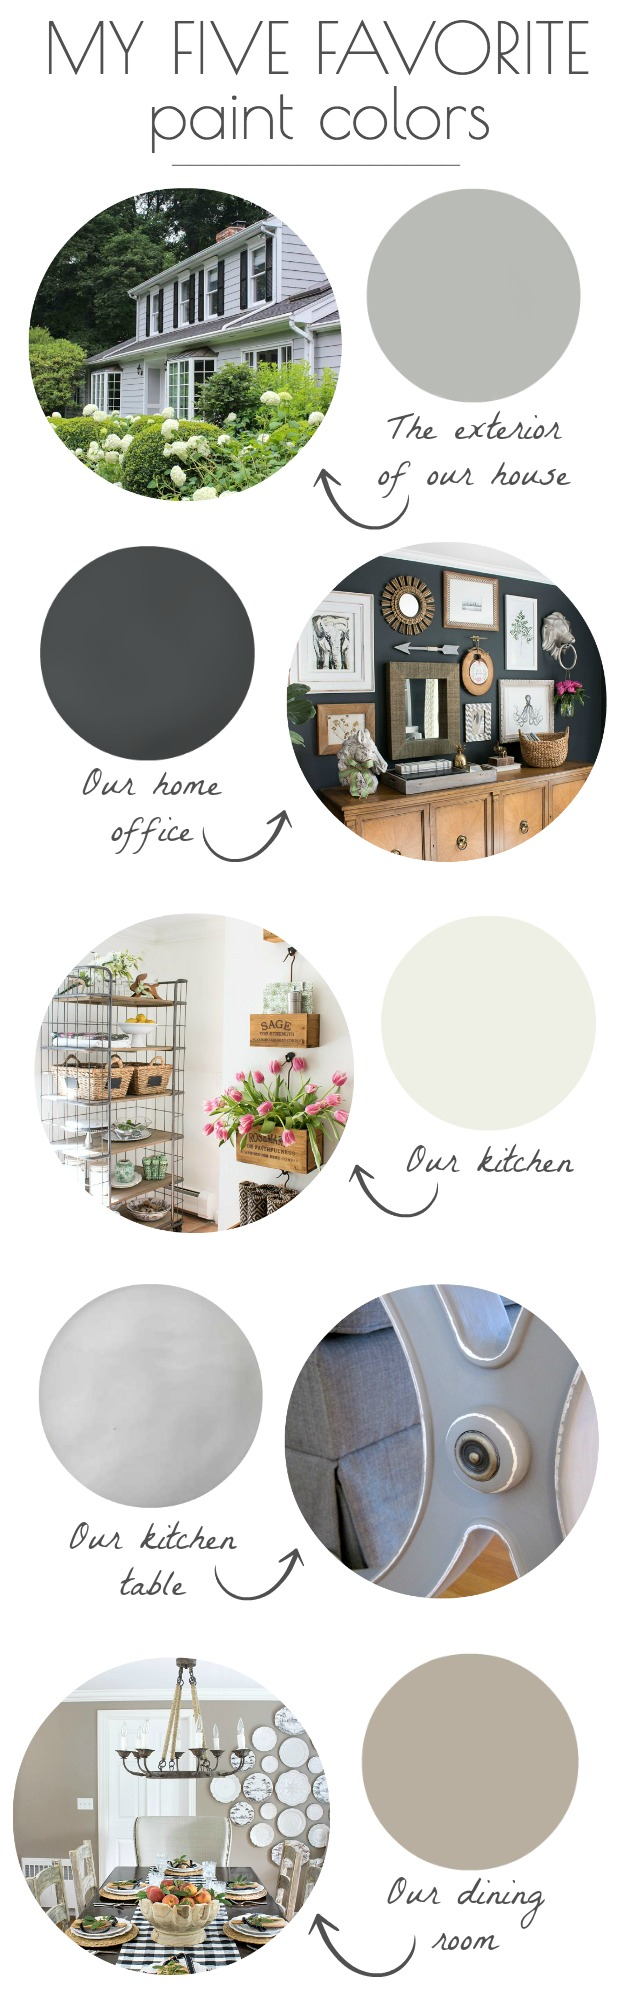 My all time favorite paint colors - click over to post to see what they are and how they look in my home!